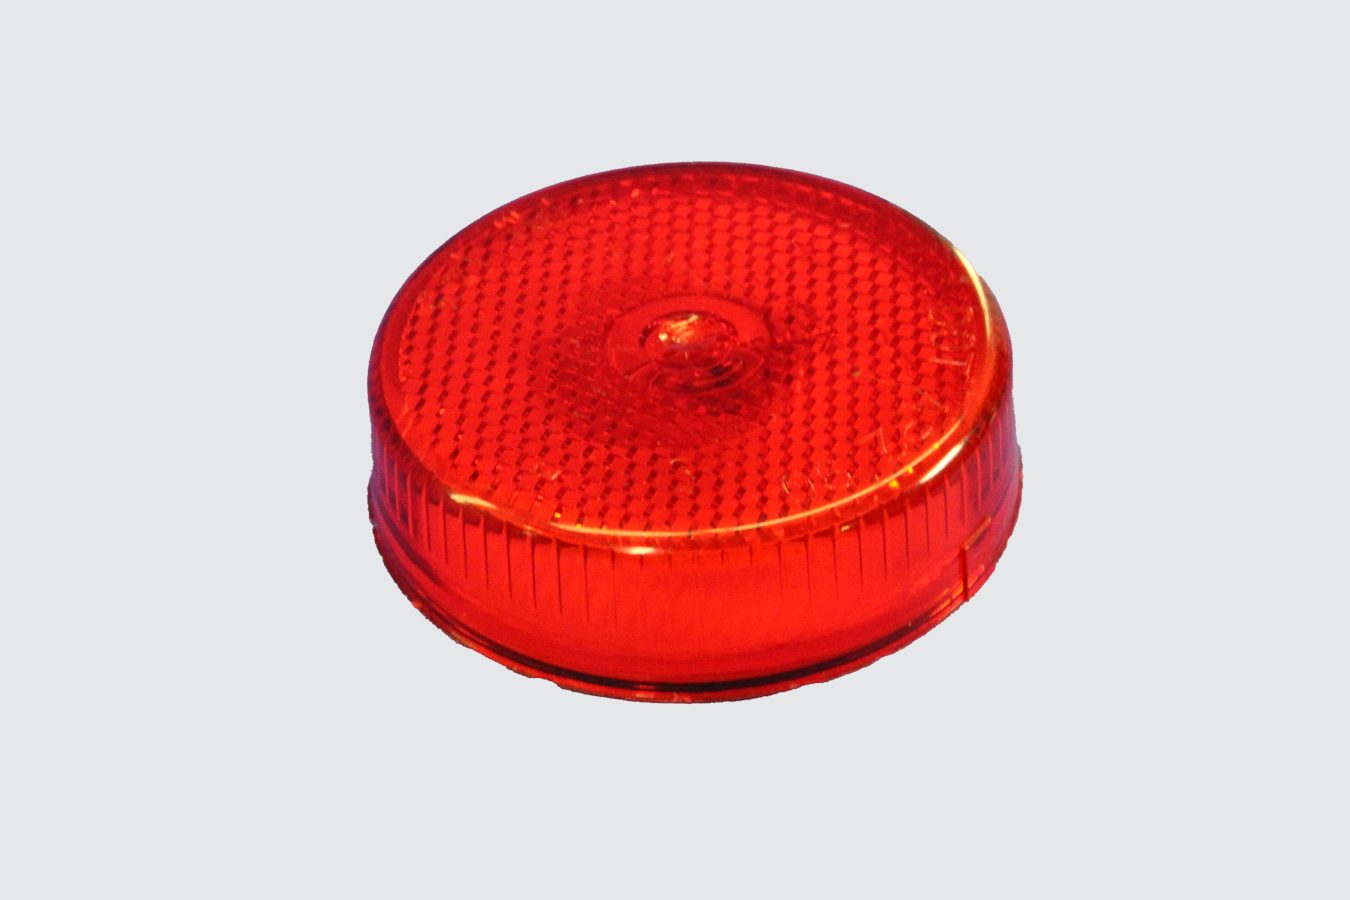 35367044 - LAMP, CL RED T-LITE